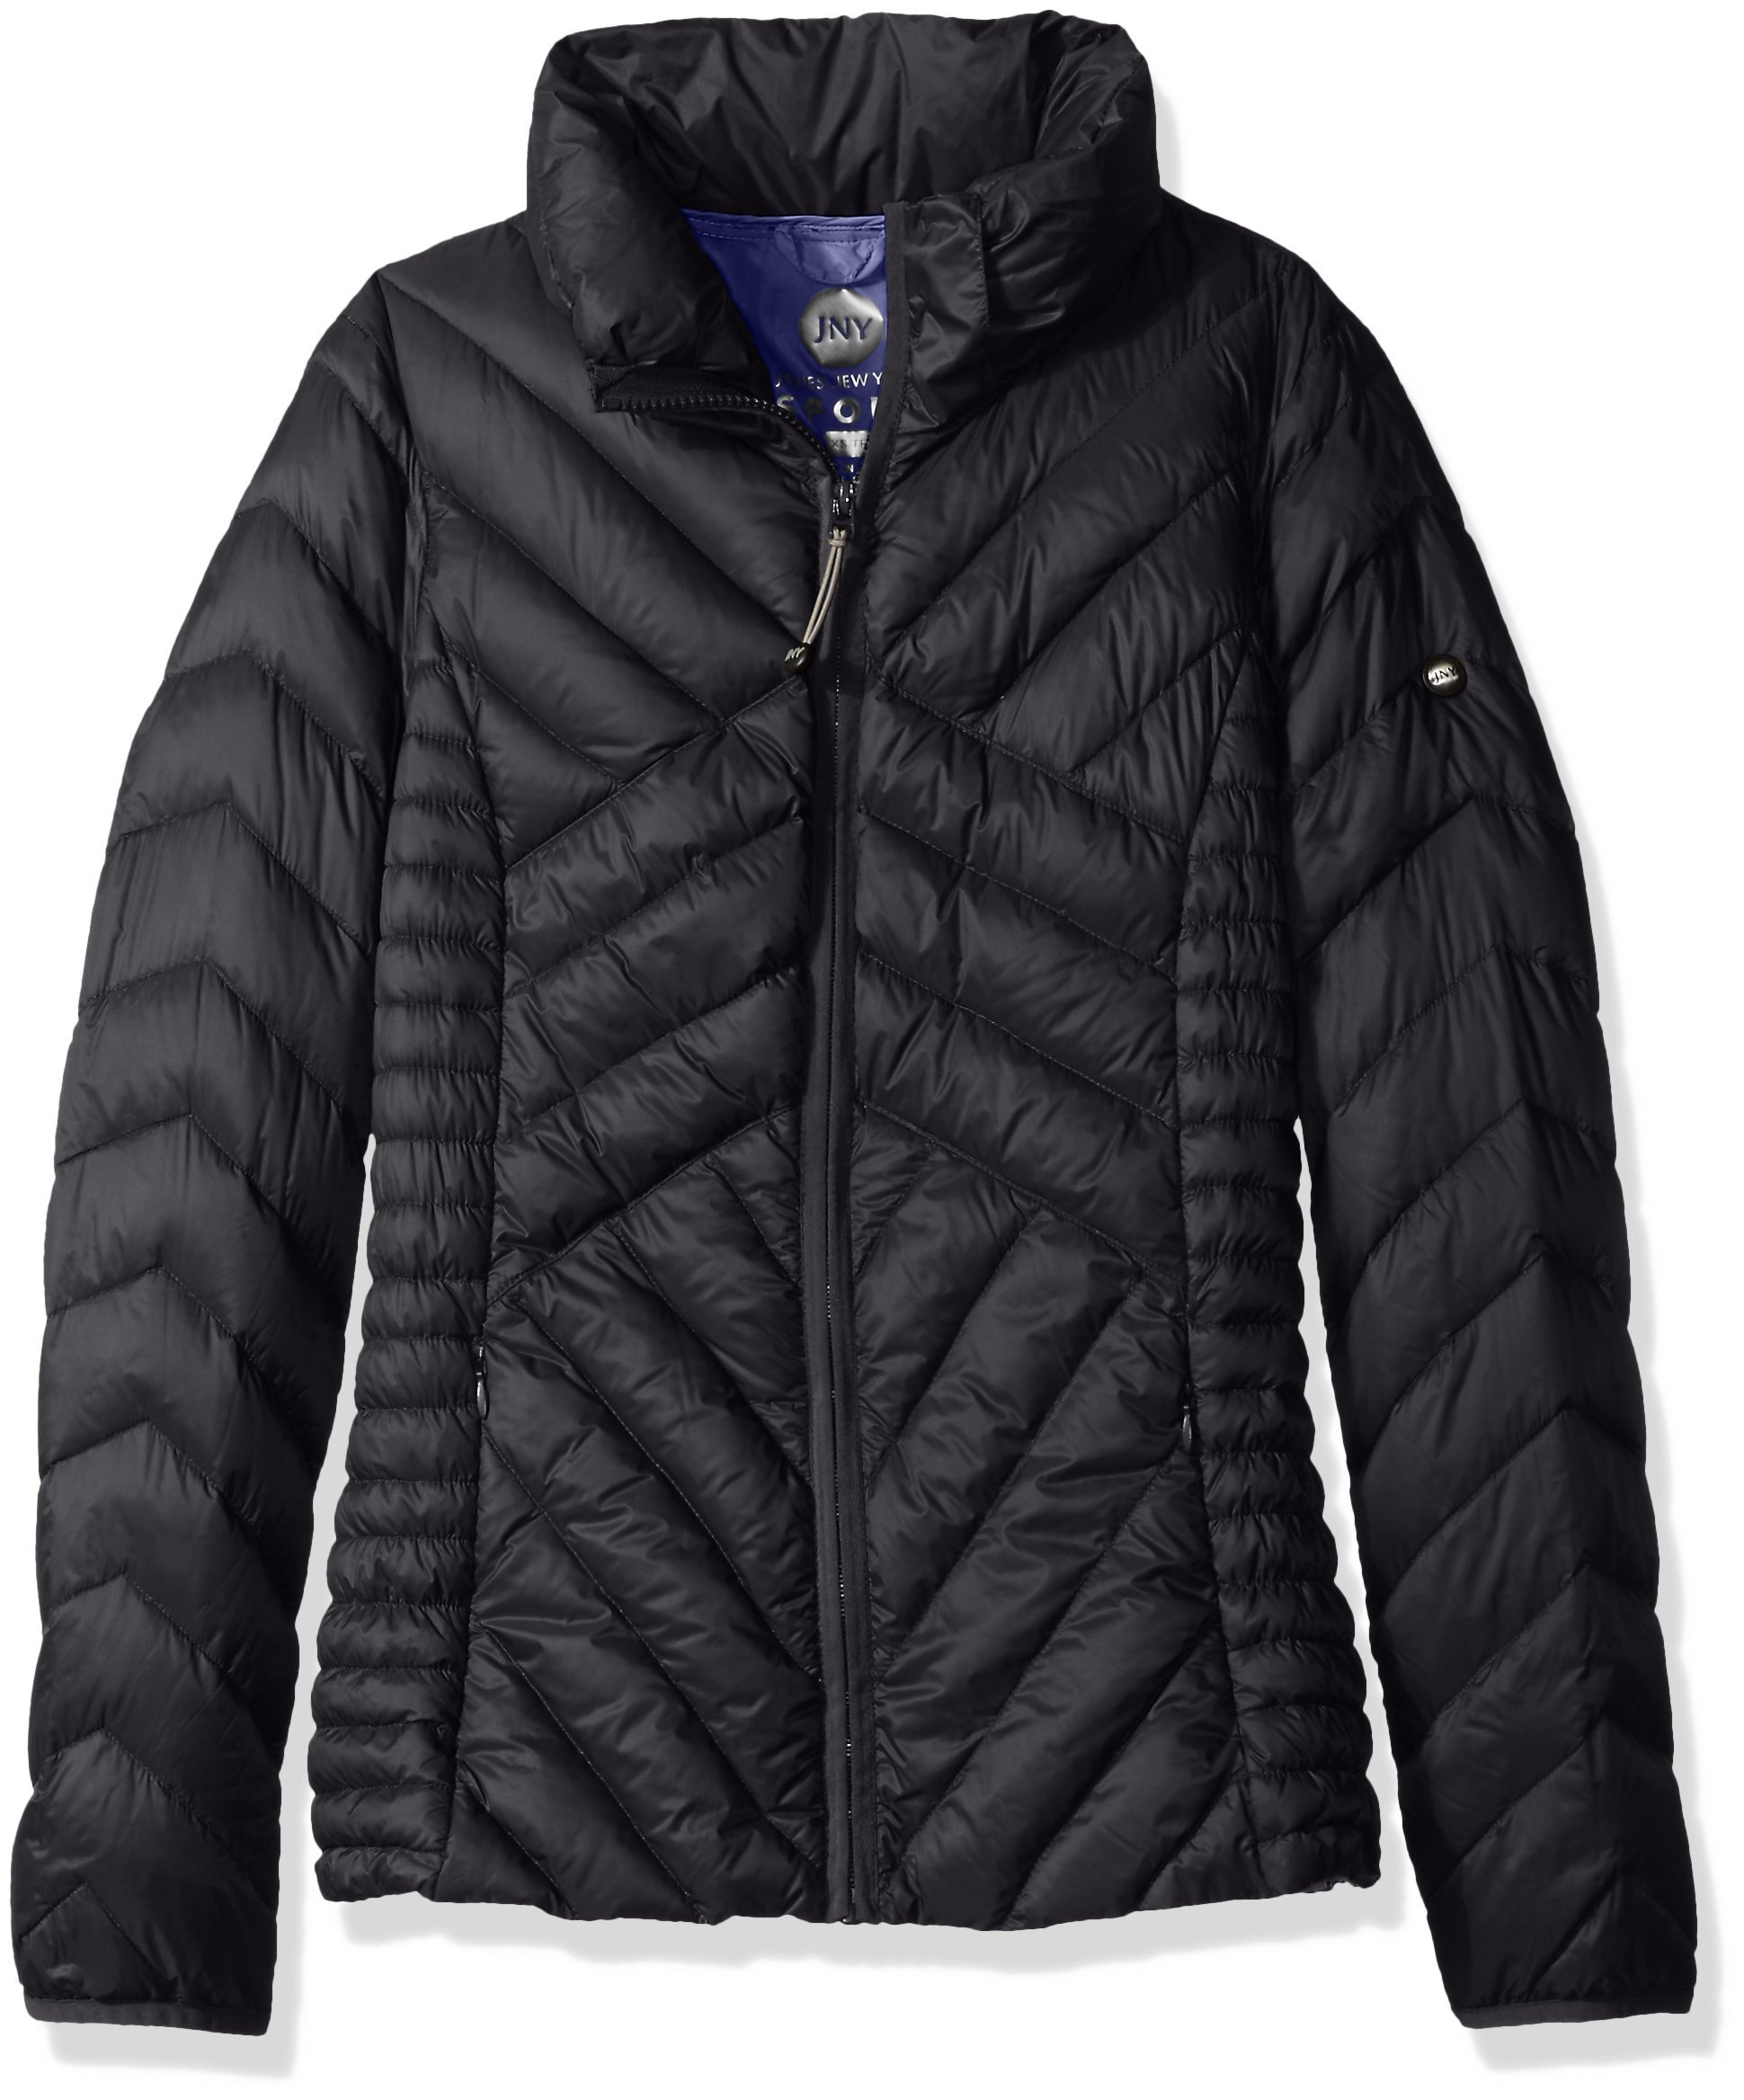 Jones New York Women's Sport Short Packable Down Jacket, Black, X-Small